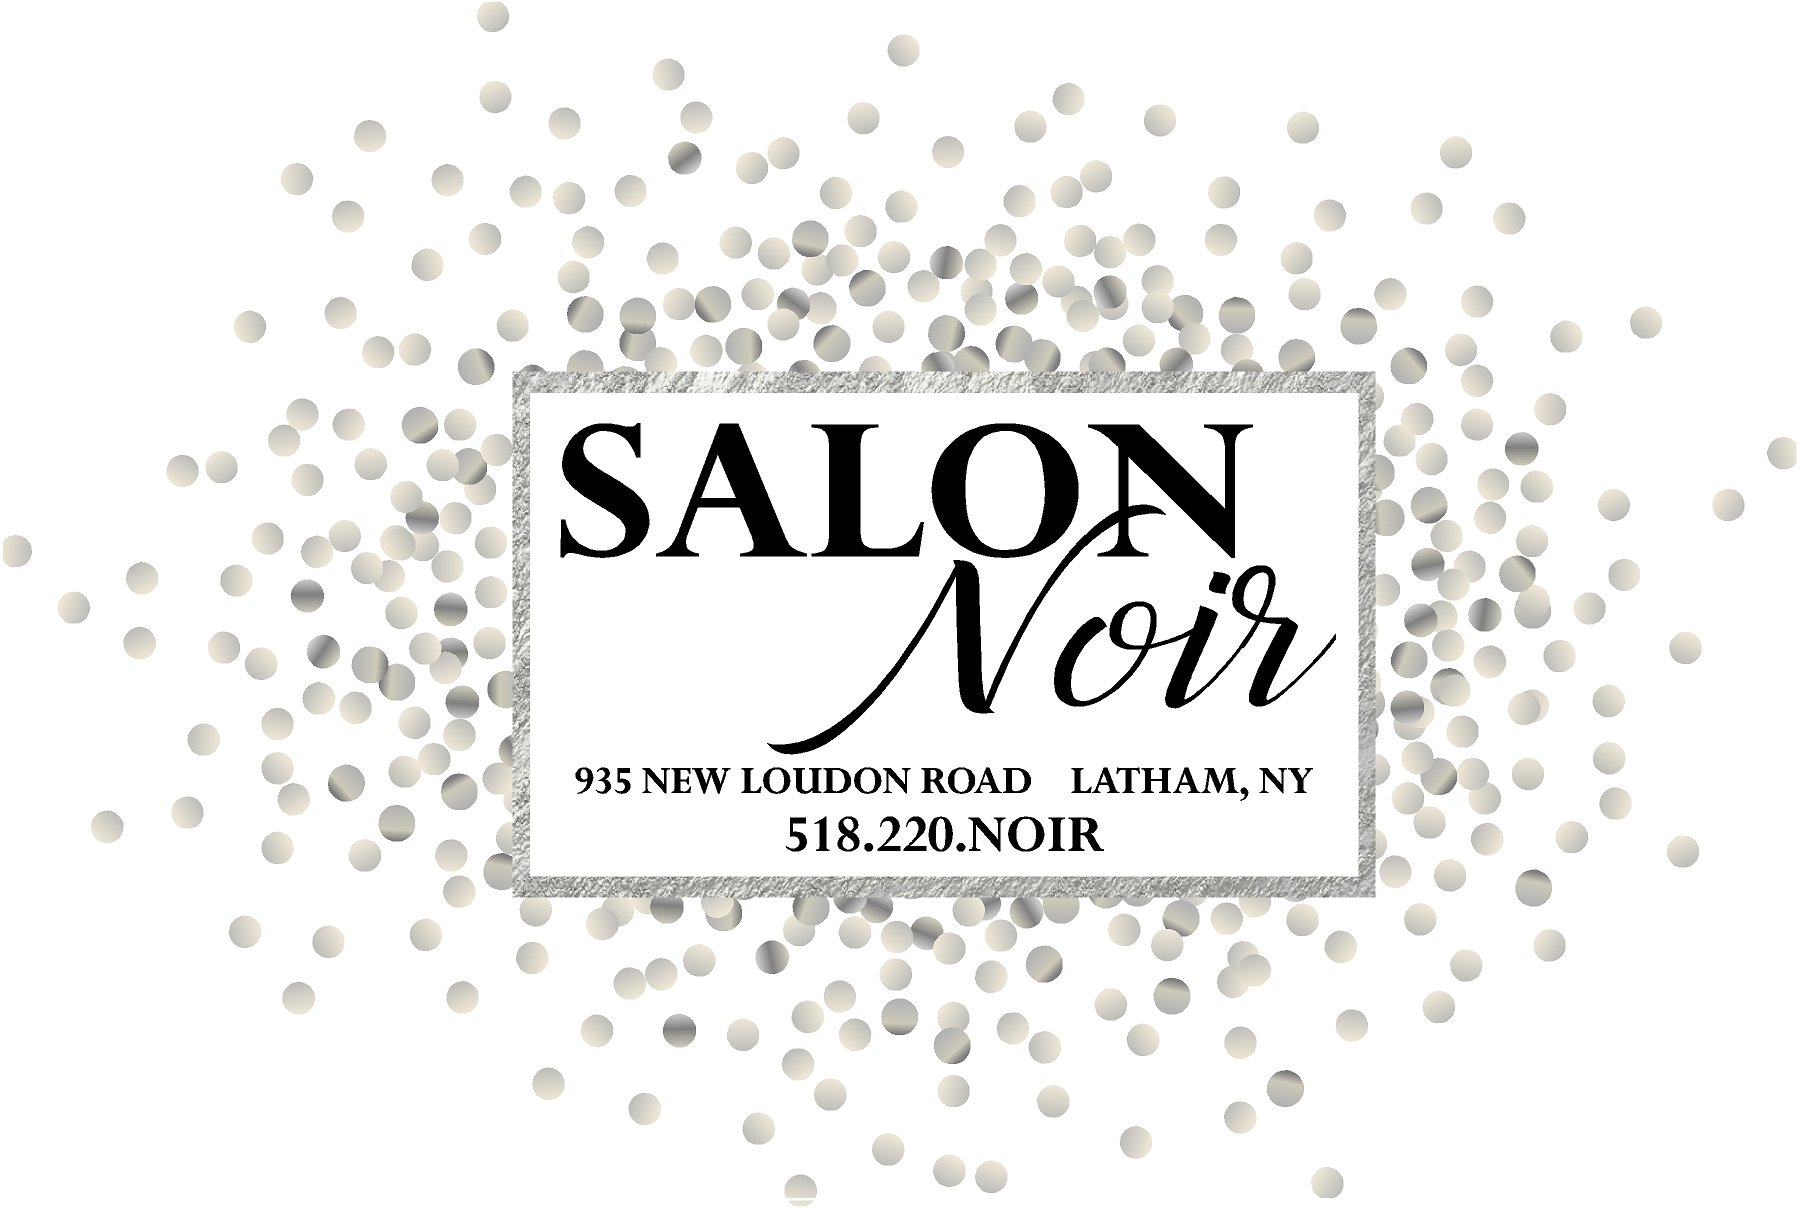 De Salon Noir Salon Noir